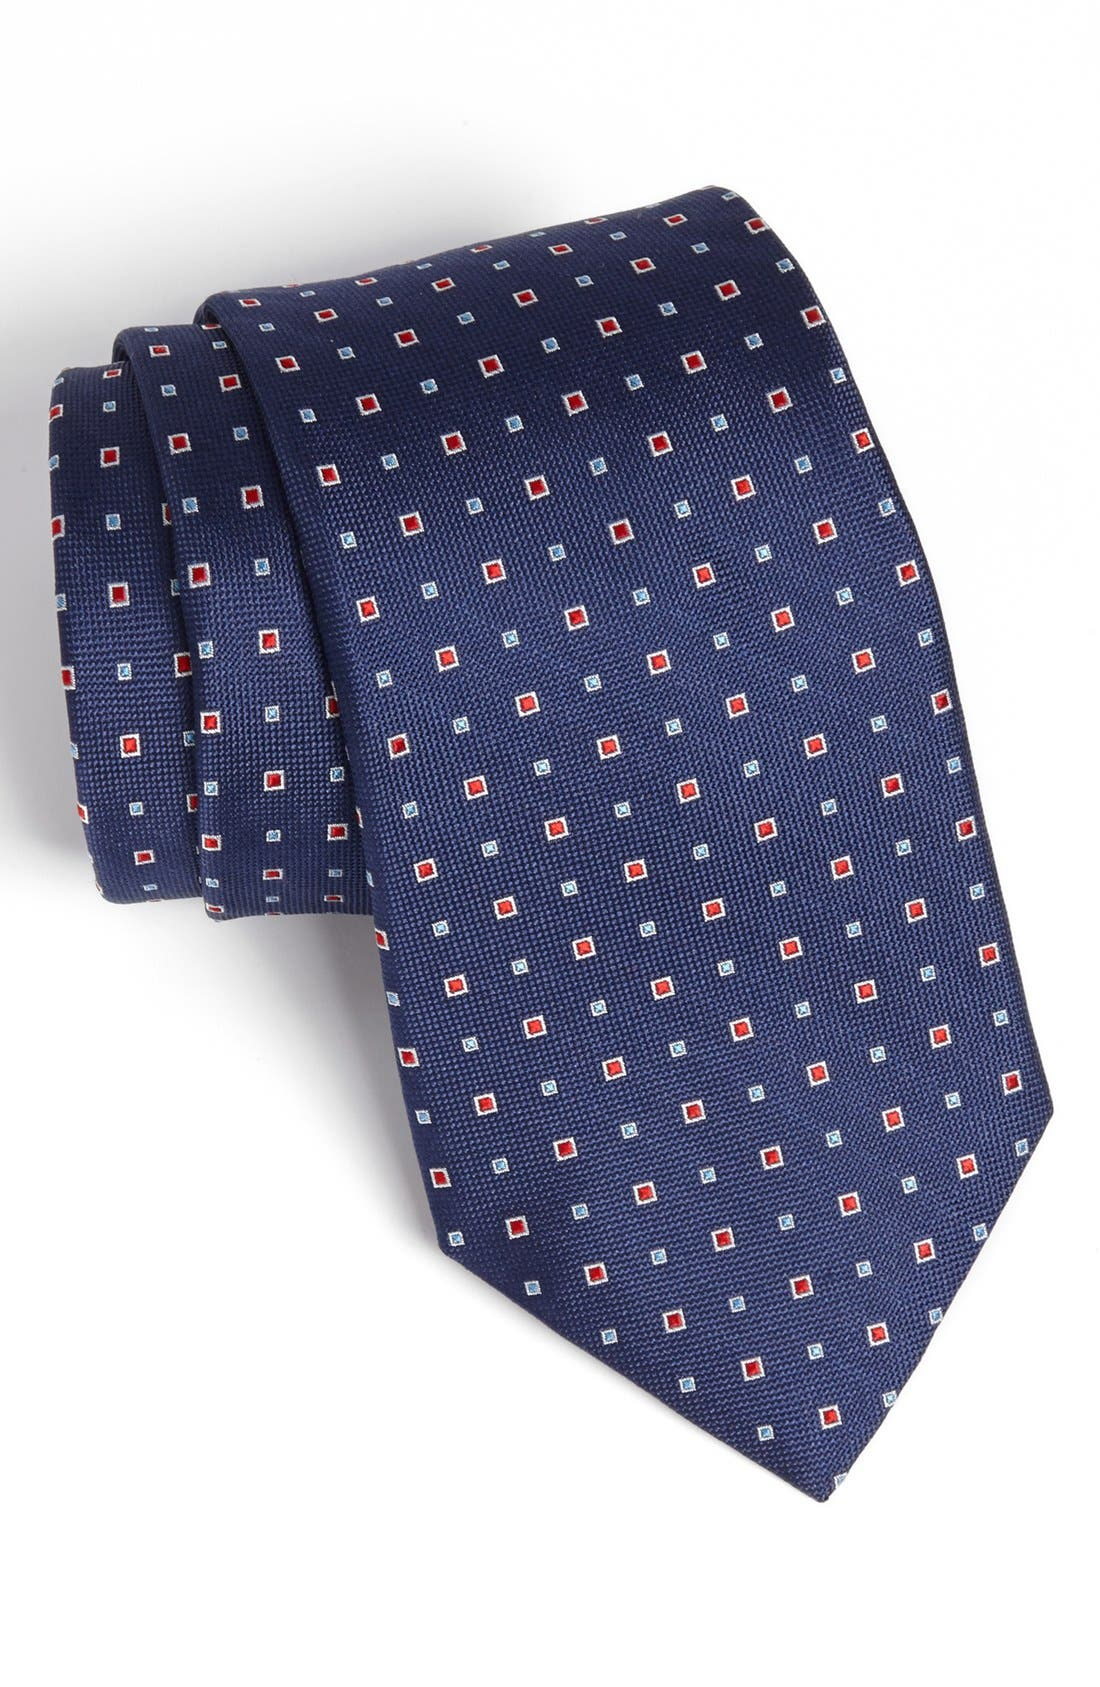 Alternate Image 1 Selected - Nordstrom Woven Silk Tie (Tall)